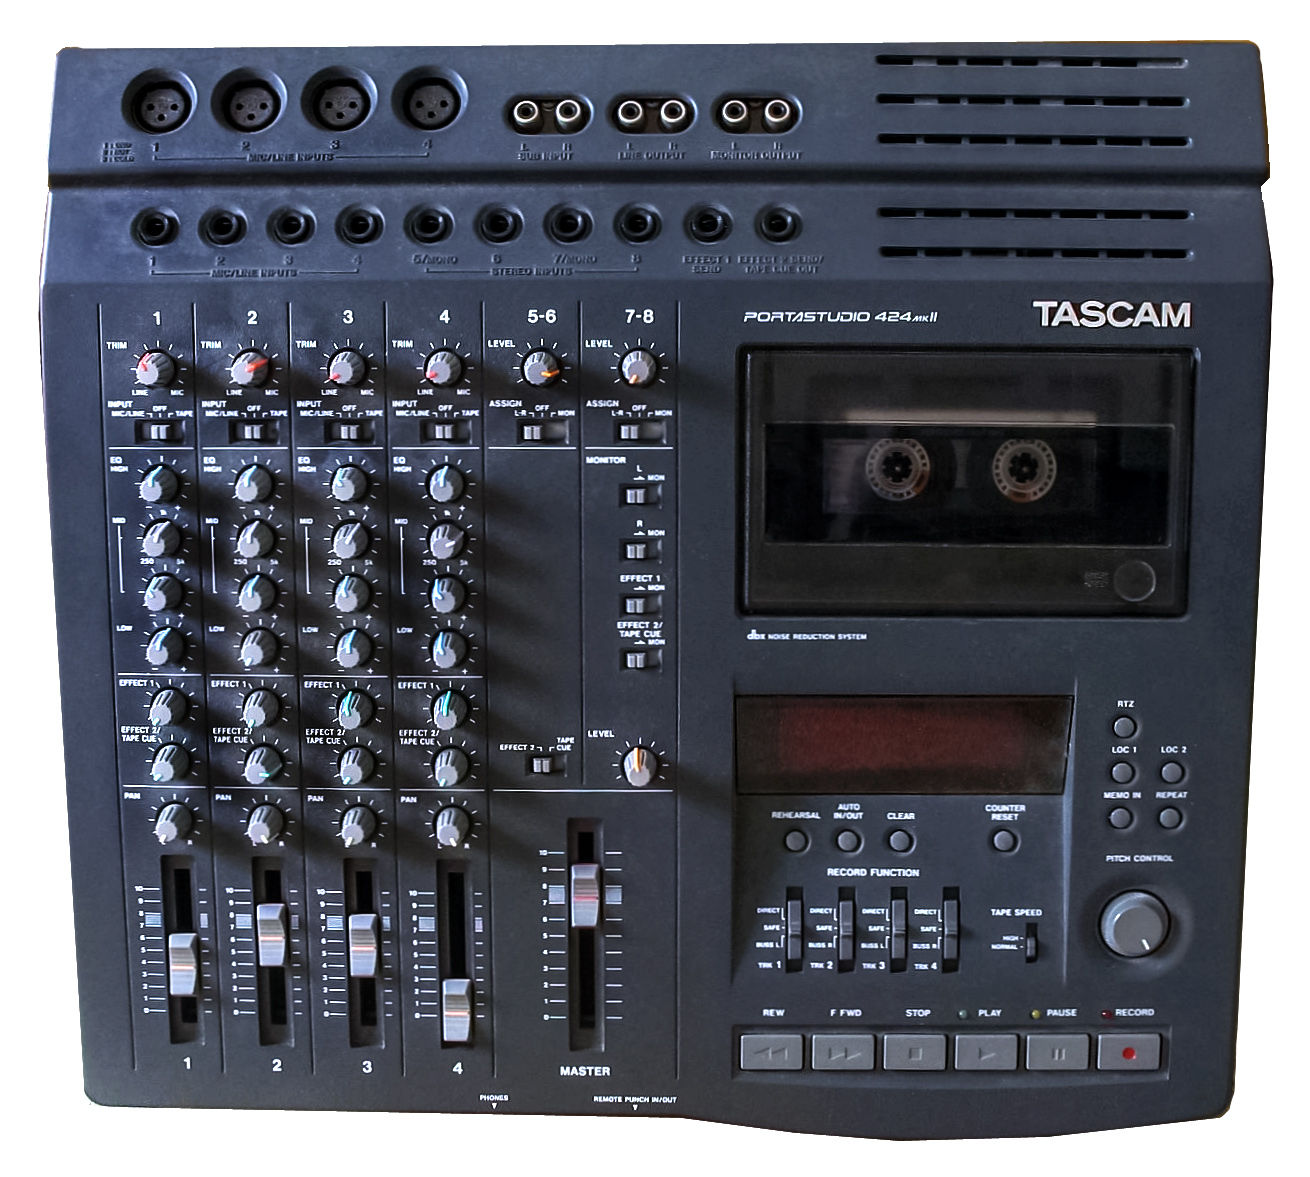 https://upload.wikimedia.org/wikipedia/commons/9/95/Tascam_PortaStudio_424_MKII_crop.jpg